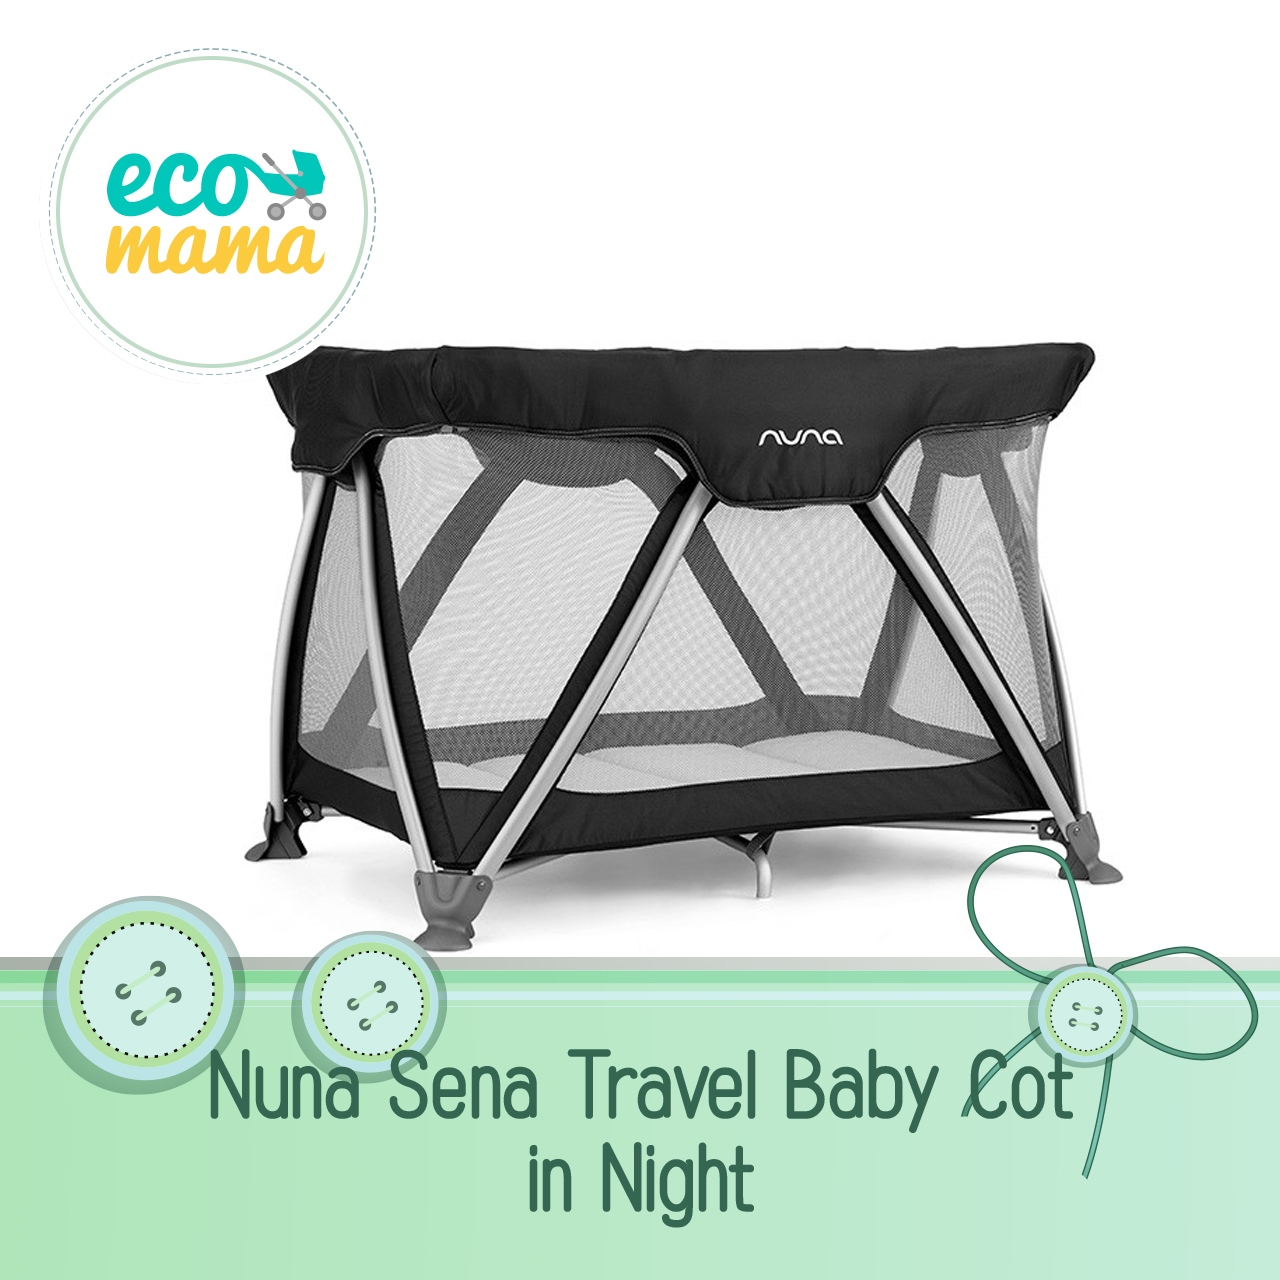 Nuna Sena Travel Crib in Night